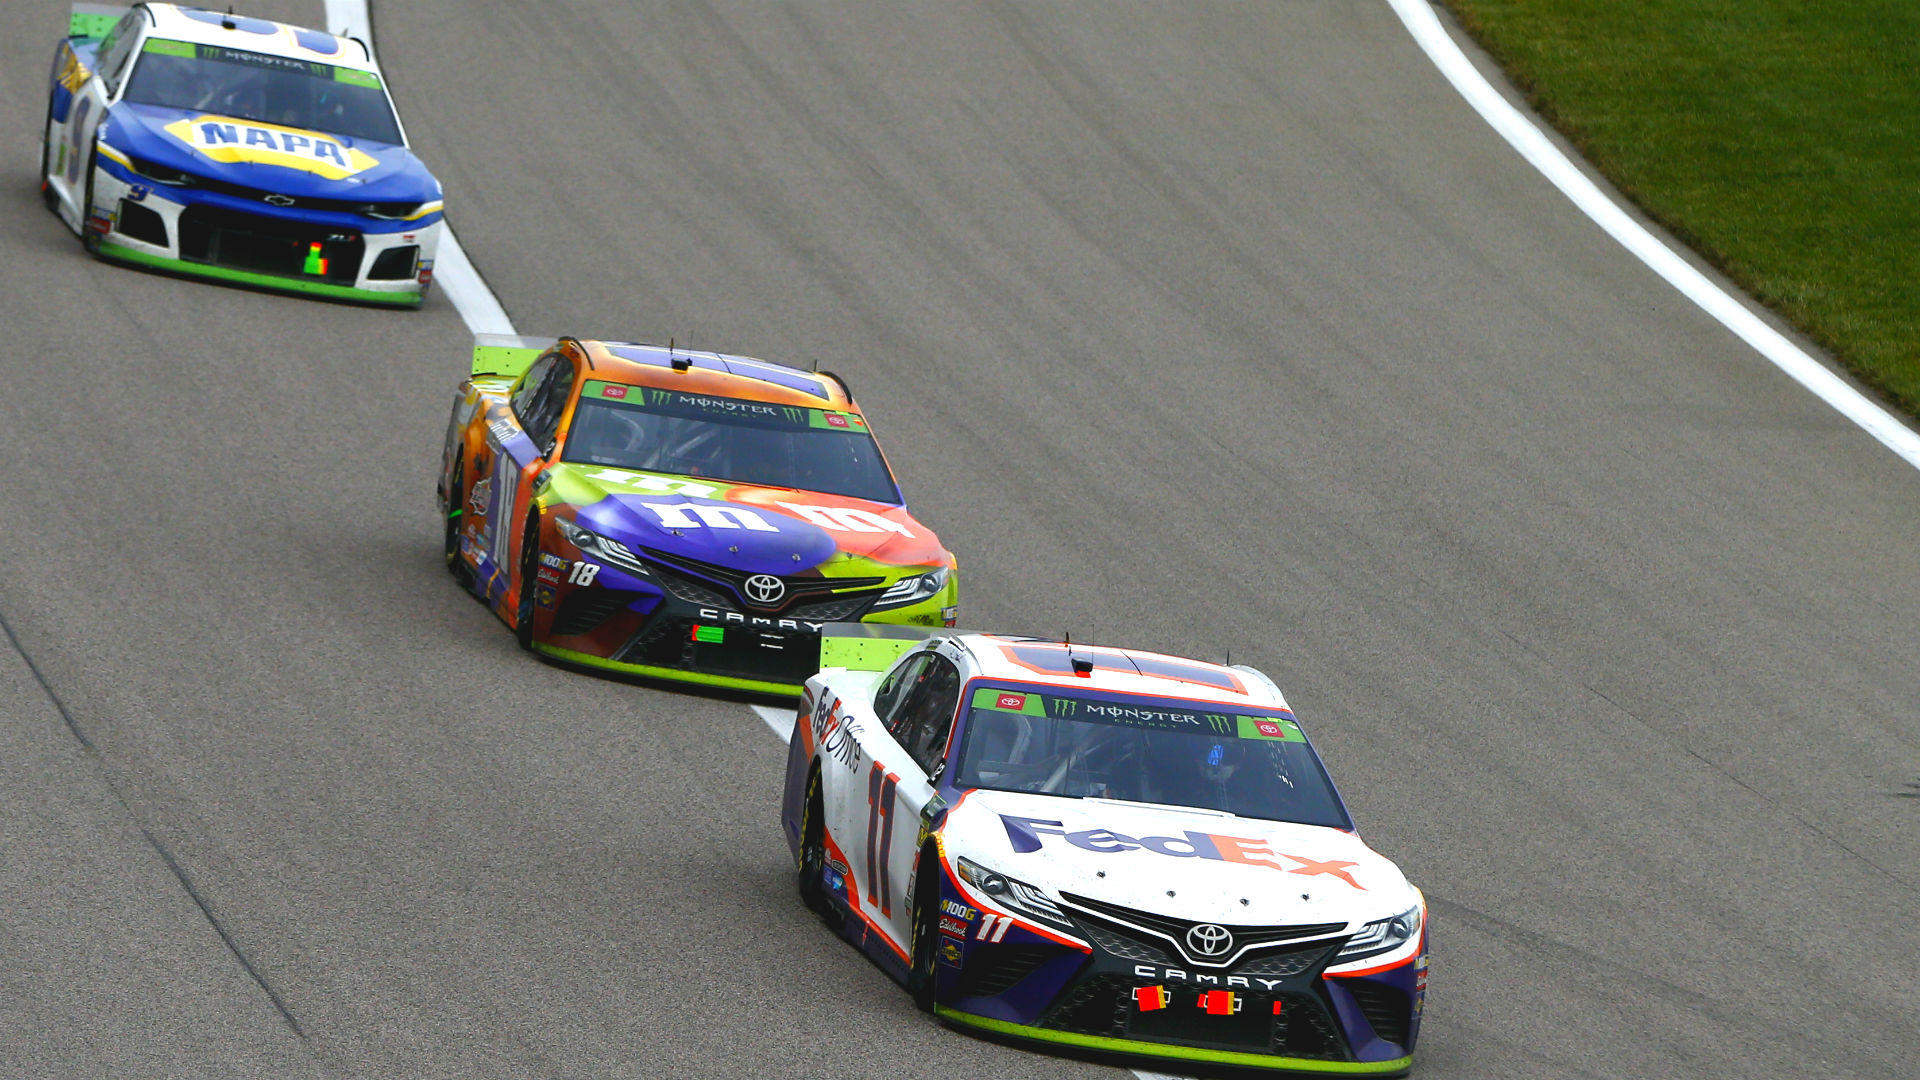 Nascar Pole Position >> Nascar Starting Lineup At Phoenix Top 10 Loaded With